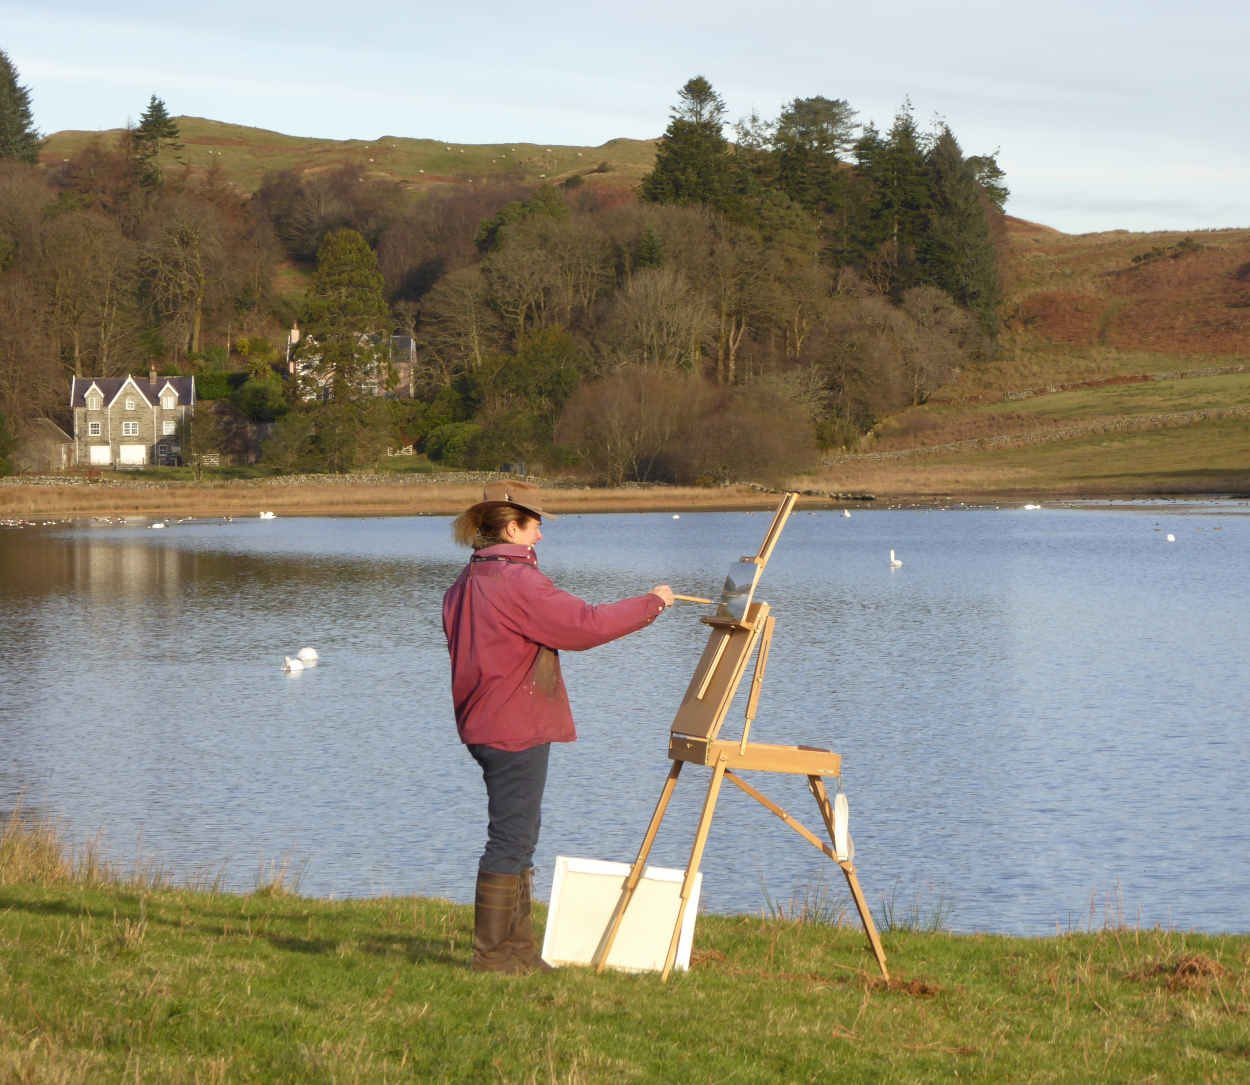 Painting at Ornockenoch